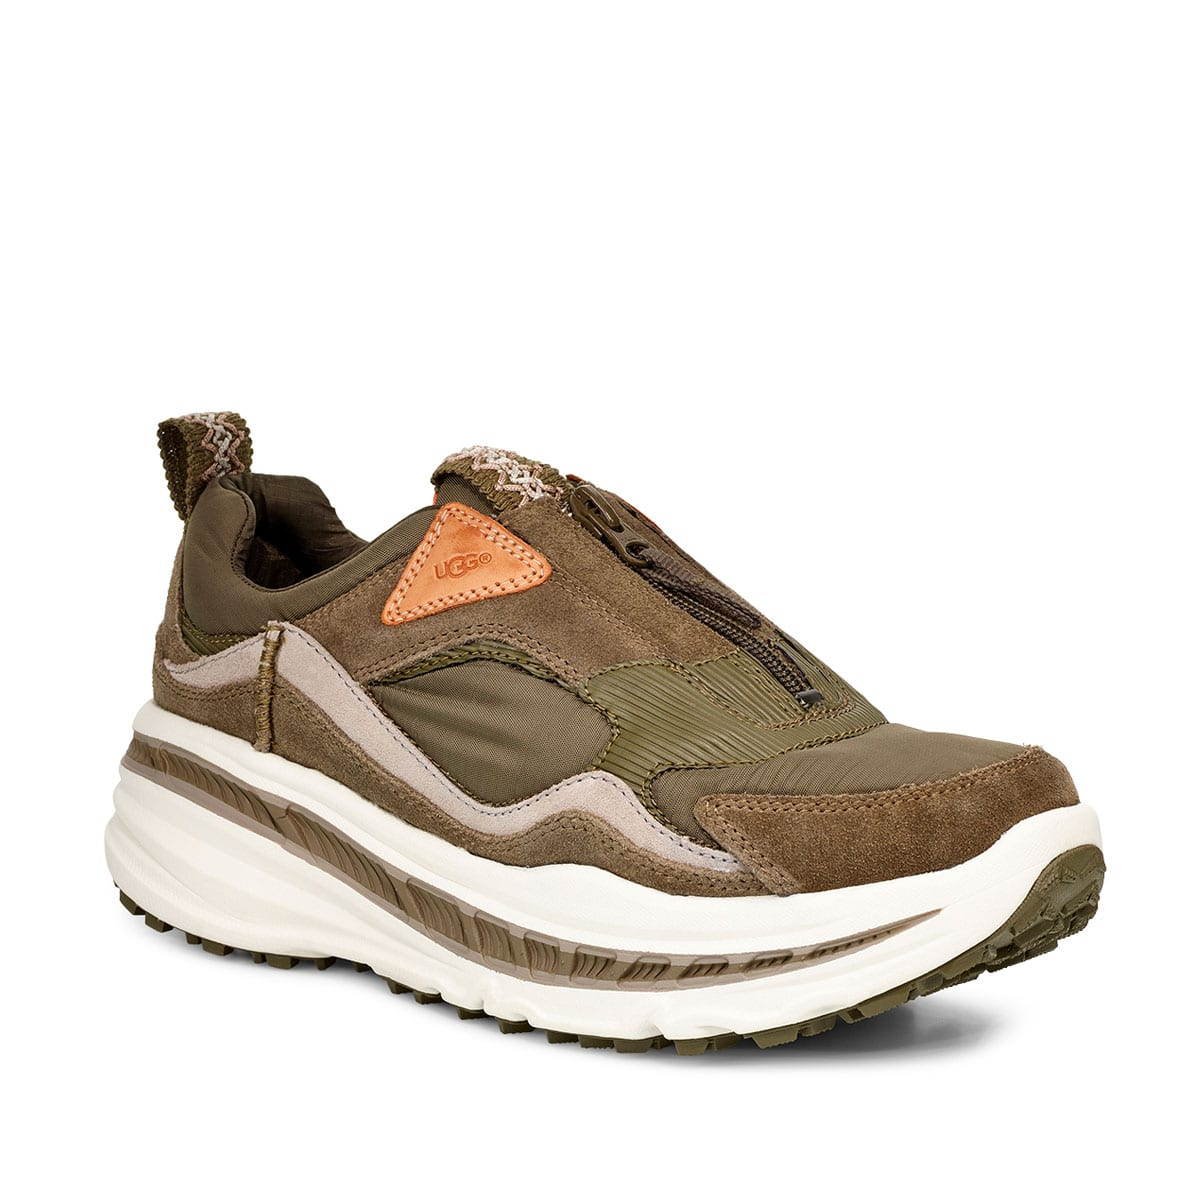 UGG 805 X MLT MILITARY GREEN 19SS-I_photo_large